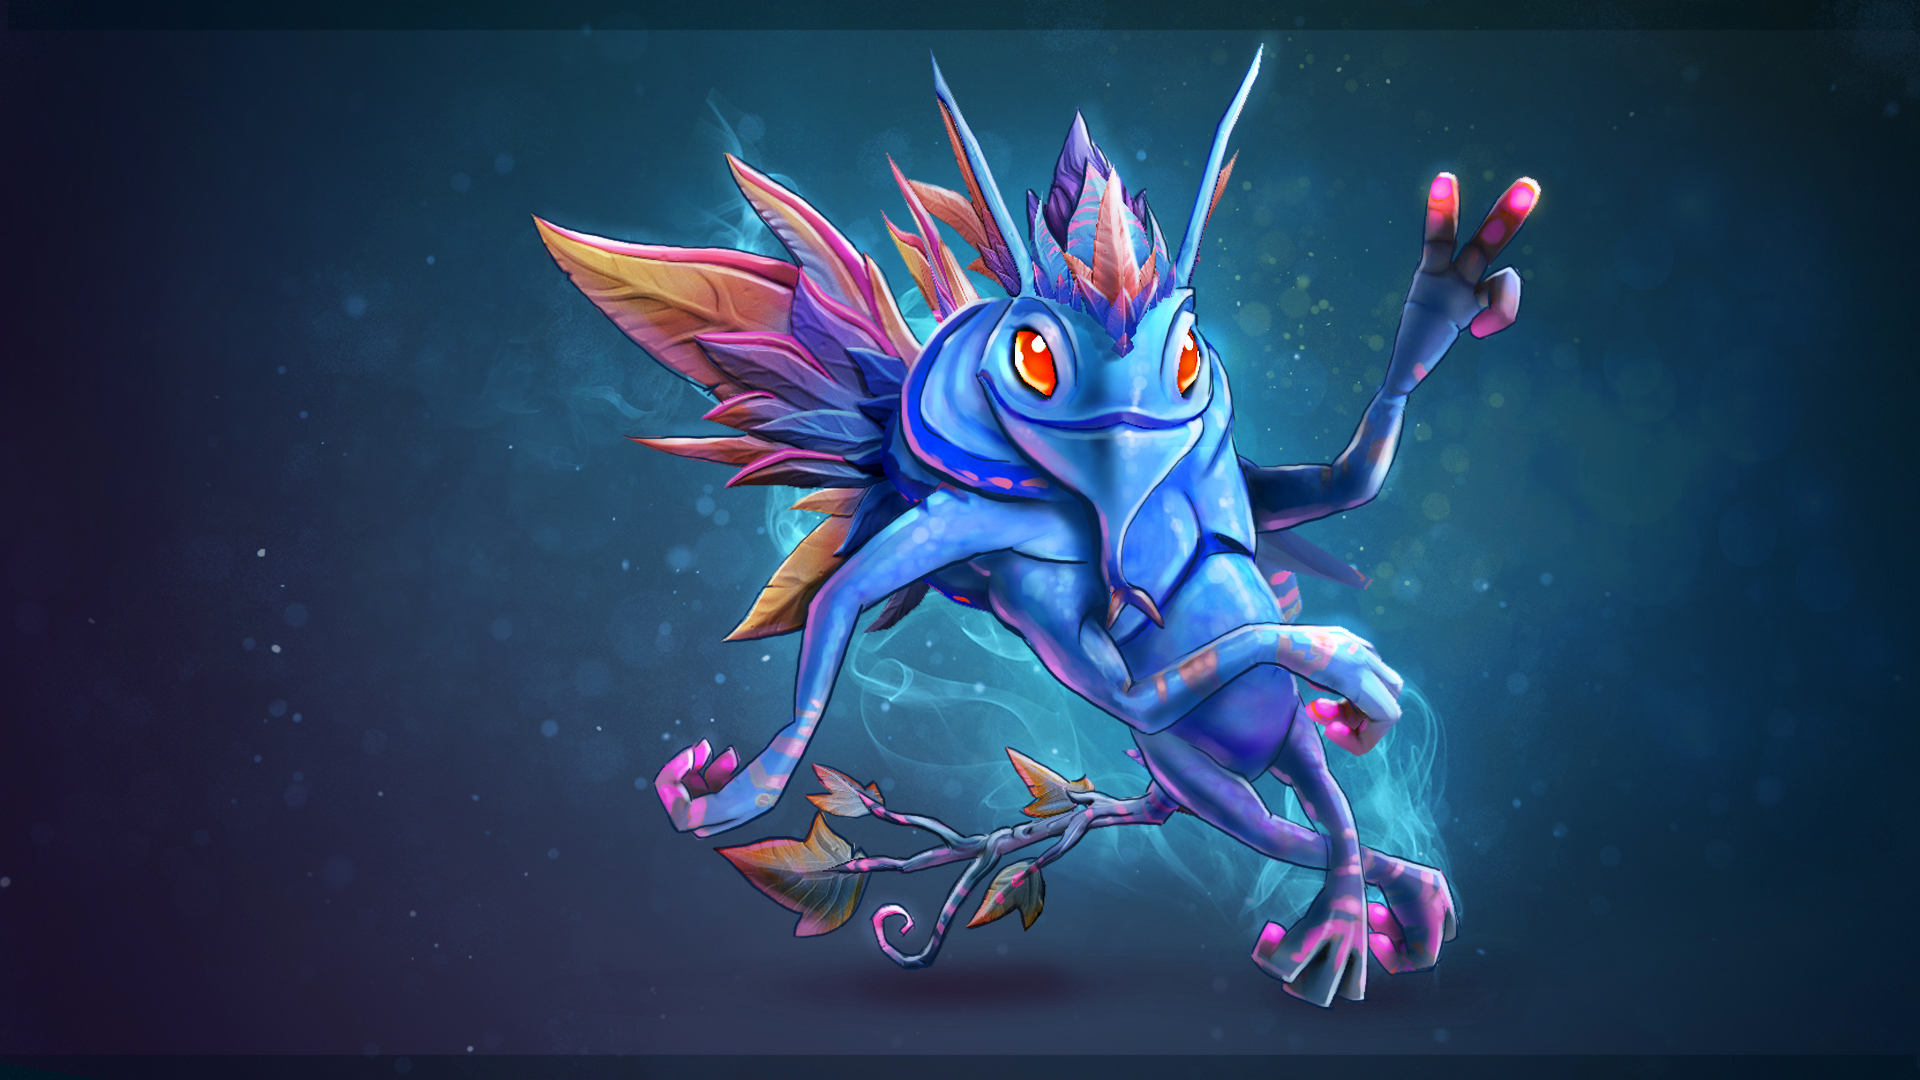 puck dota 2 wallpaper hd